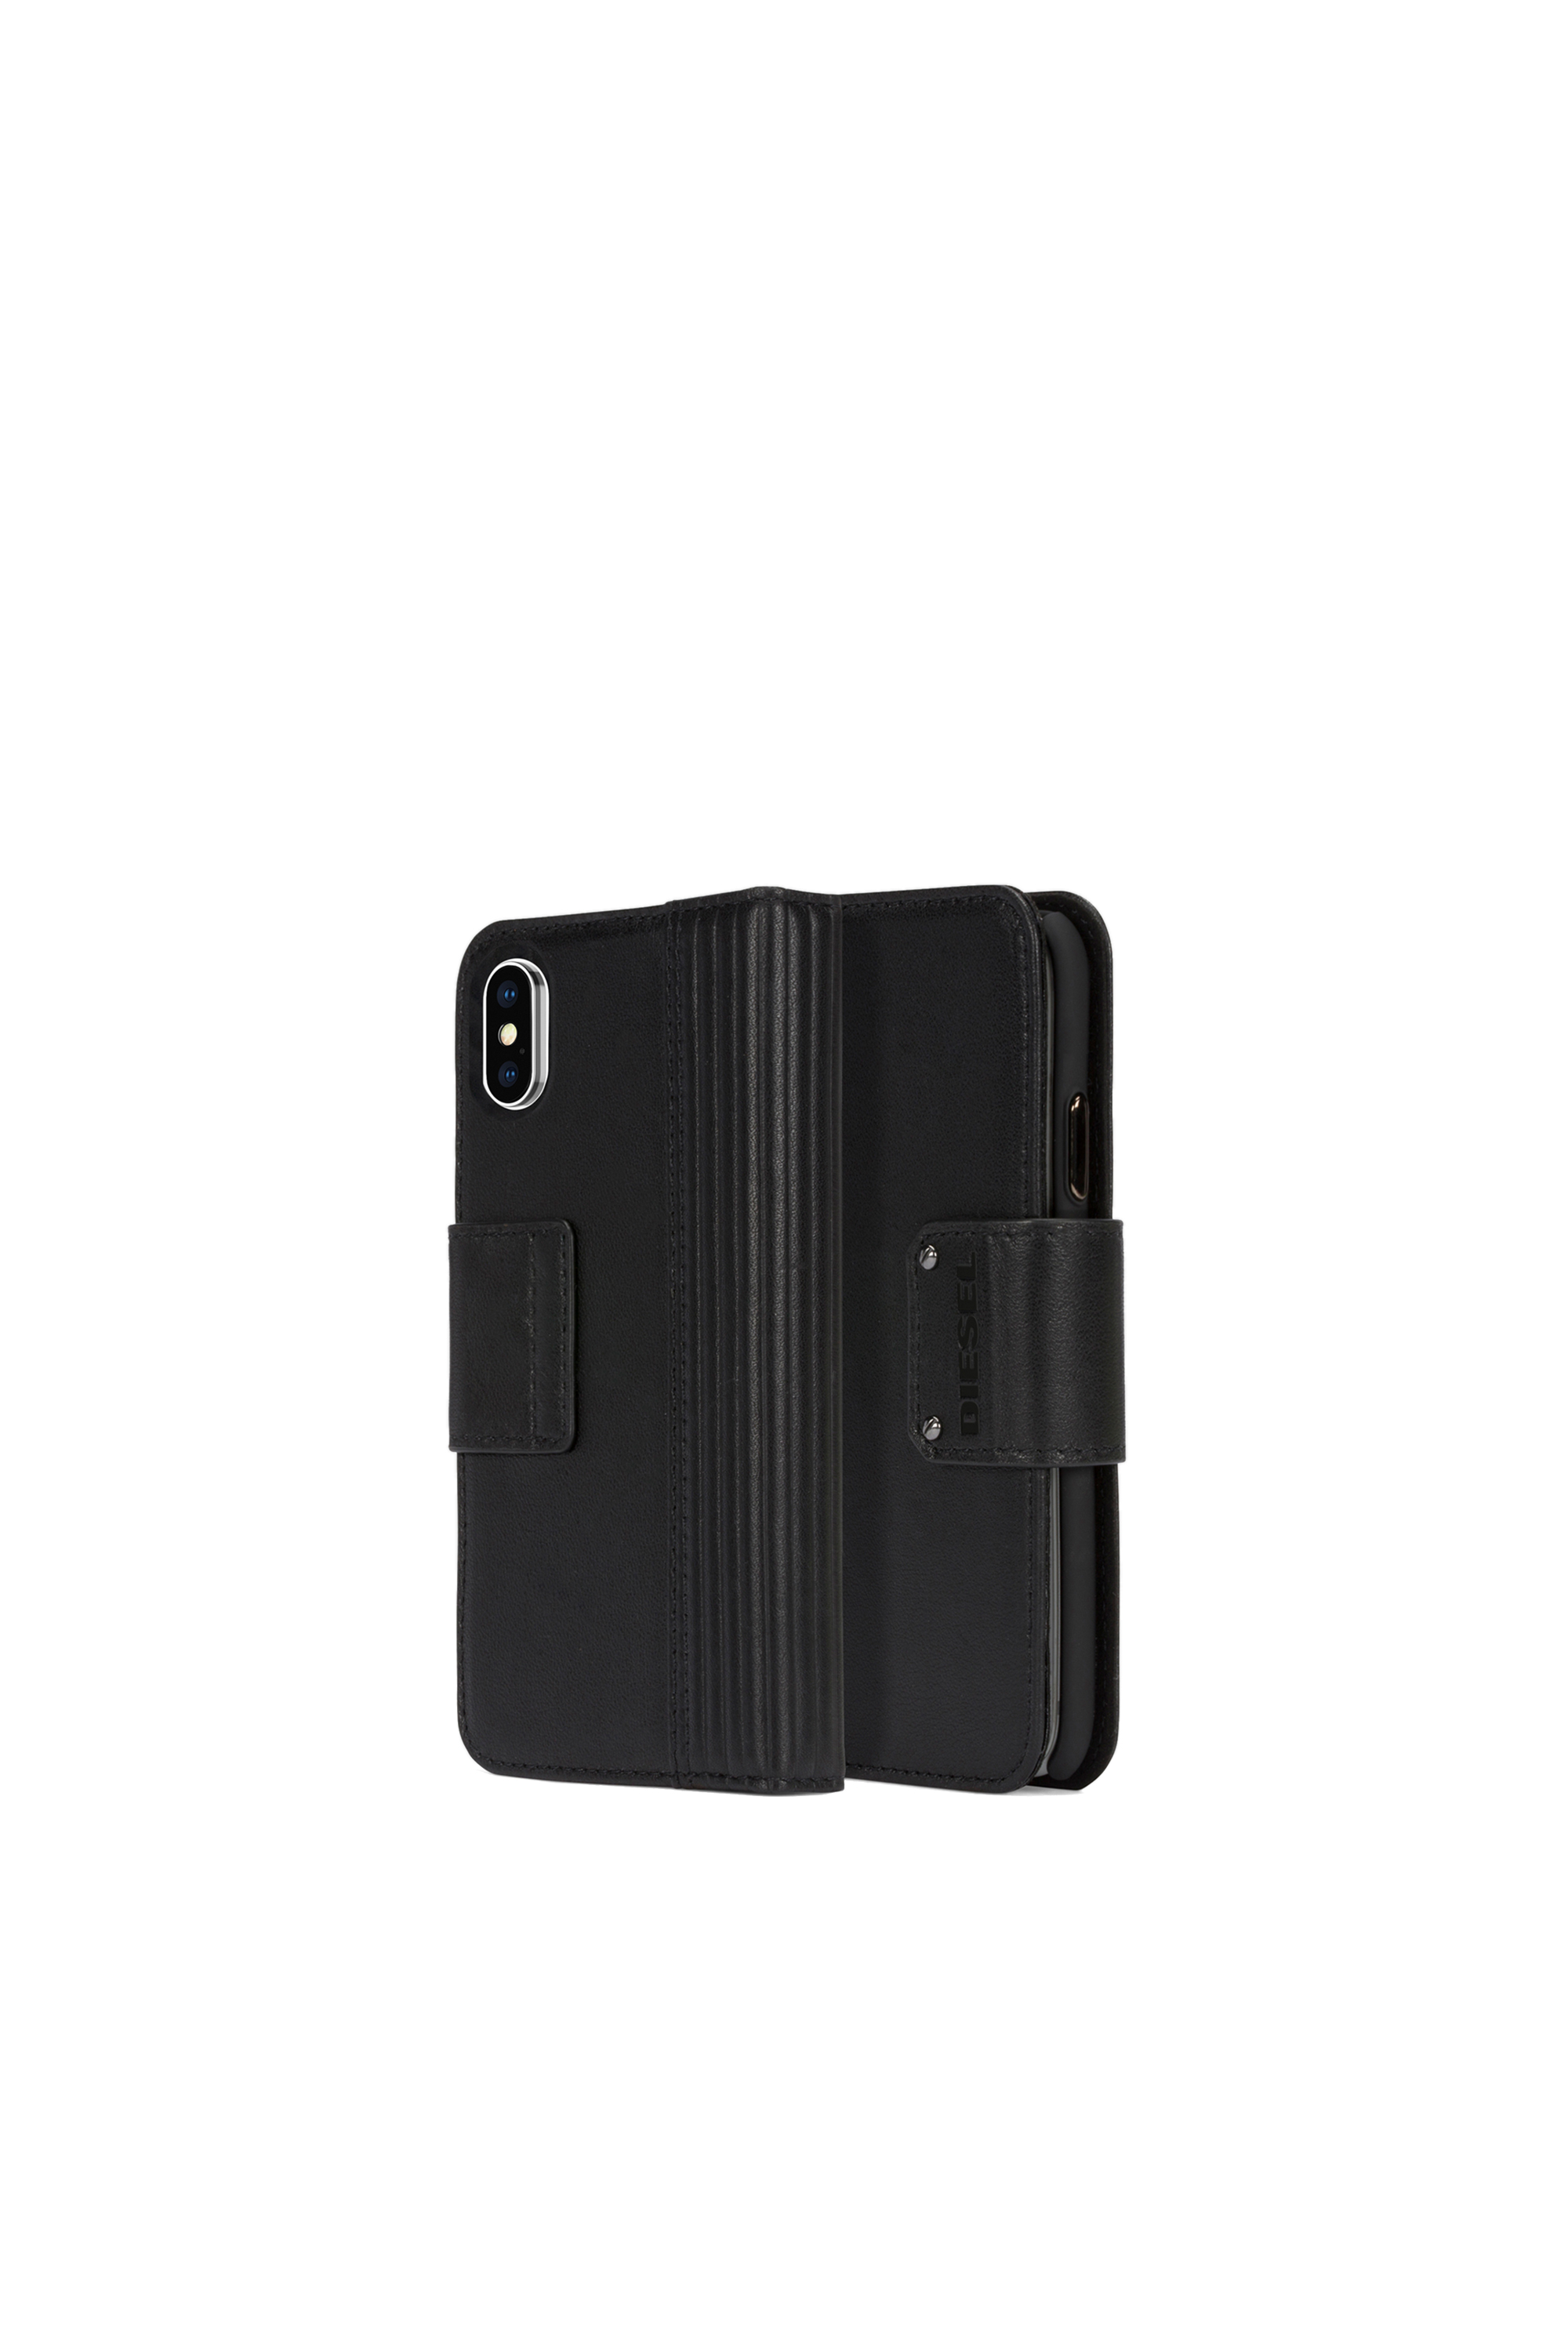 Diesel - BLACK LINED LEATHER IPHONE X FOLIO,  - Klappcover - Image 1